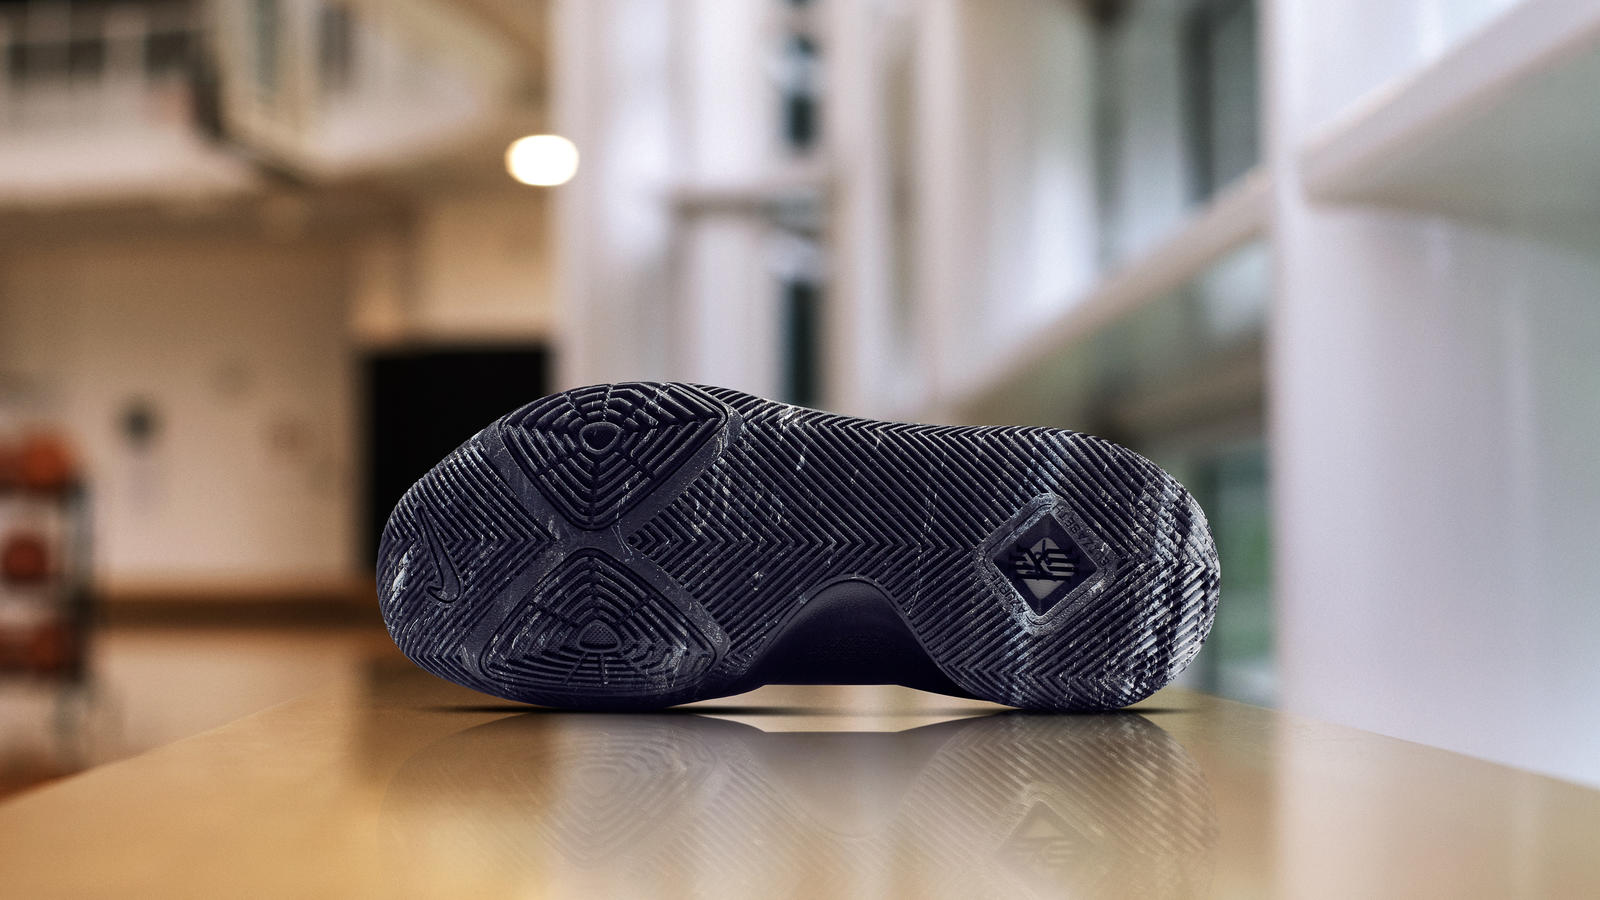 newest collection b2f5a 26861 A New Nike Kyrie 3 Colorway Comes to the Fore, a Twist on ...